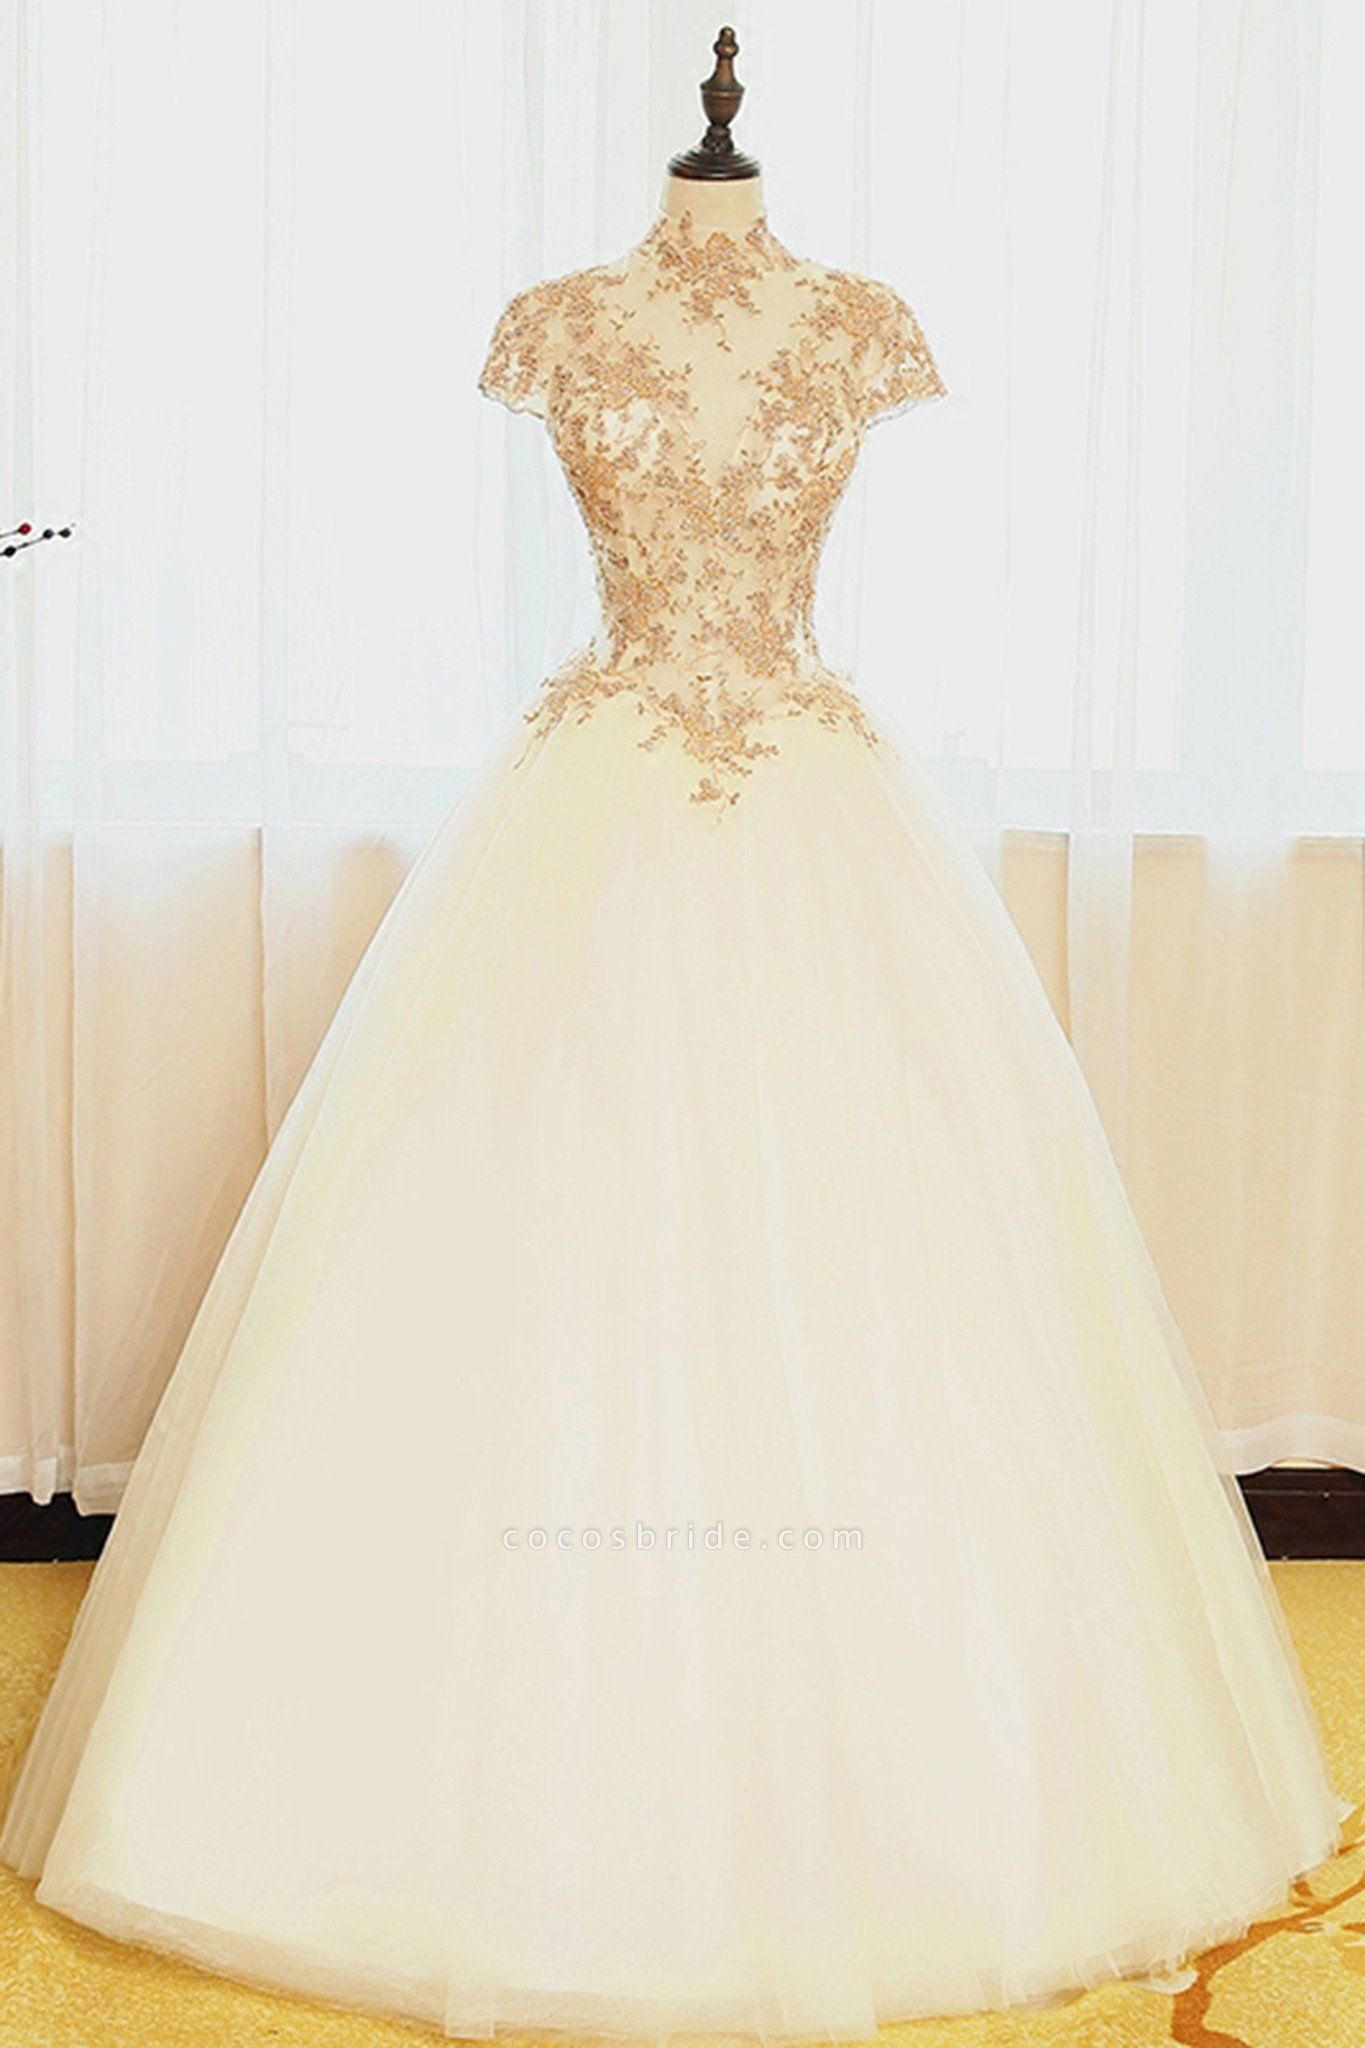 Ivory Organza Lace Applique High Neck Cap Sleeves A-Line Wedding Dresses